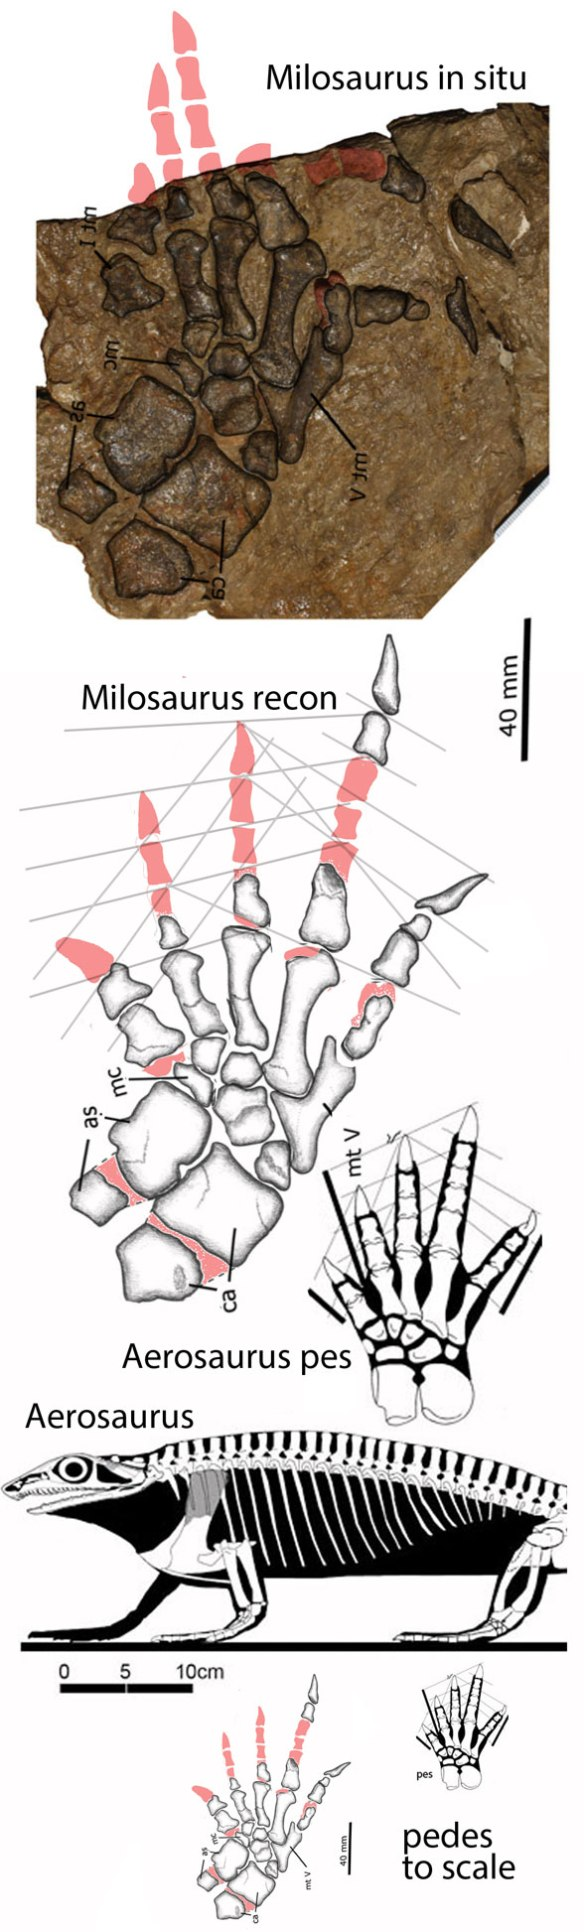 Figure 1. The pes of Milosaurus in situ, reconstructed and compared to Aerosaurus, its sister in the LRT.